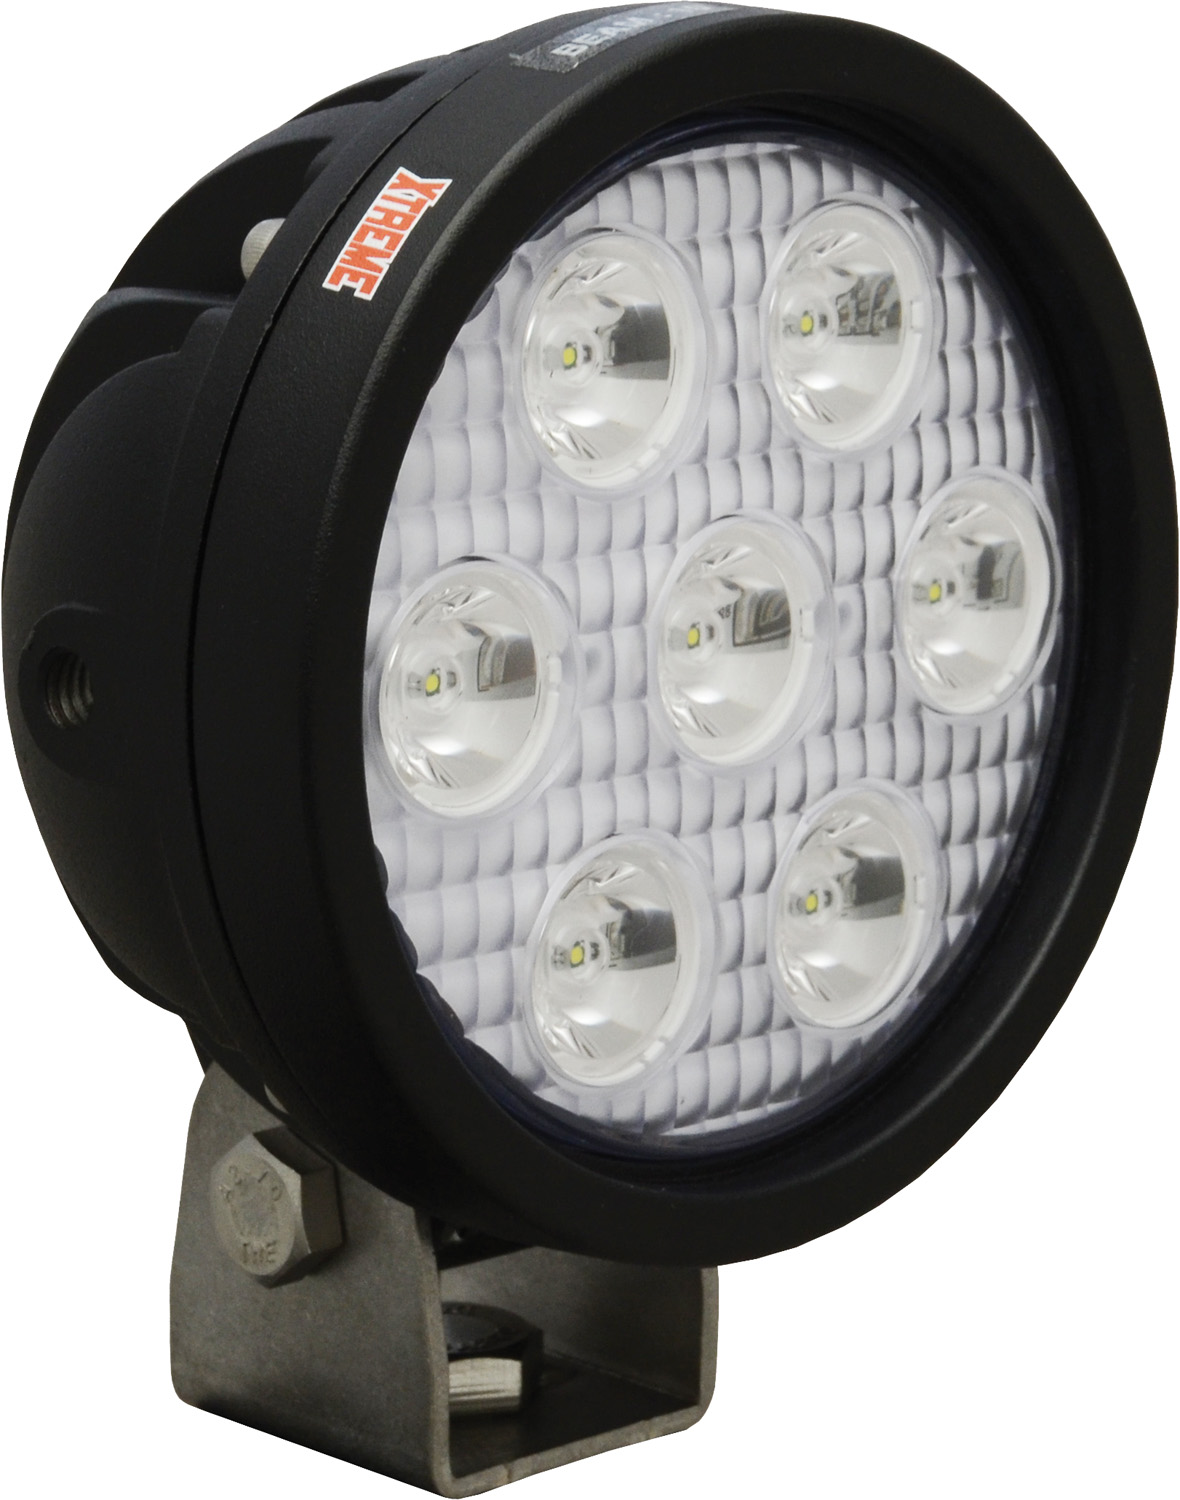 "4"" ROUND UTILITY MARKET XTREME BLACK 7 5W LED'S 10° NARROW"